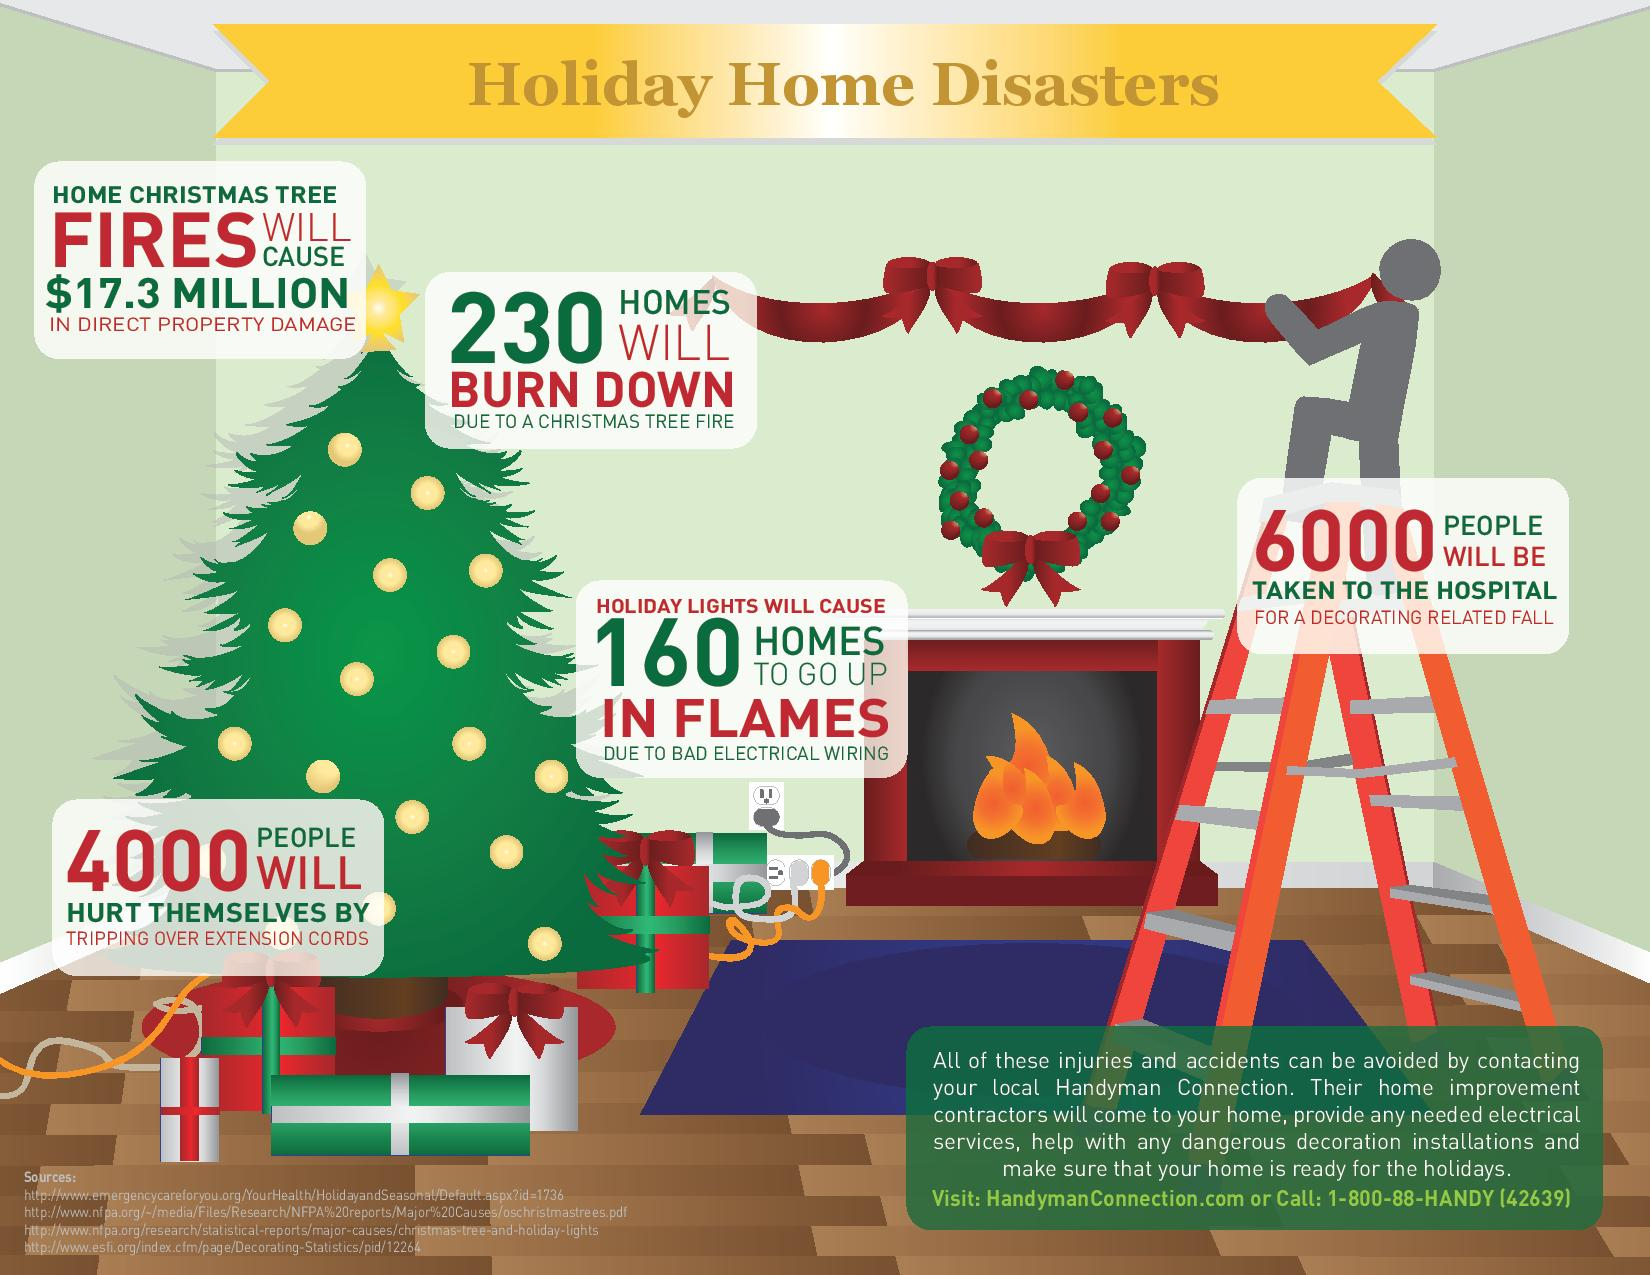 Avoid Holiday Home Disasters by Hiring a Handyman for your Home Decoration & Electrical Service Needs!